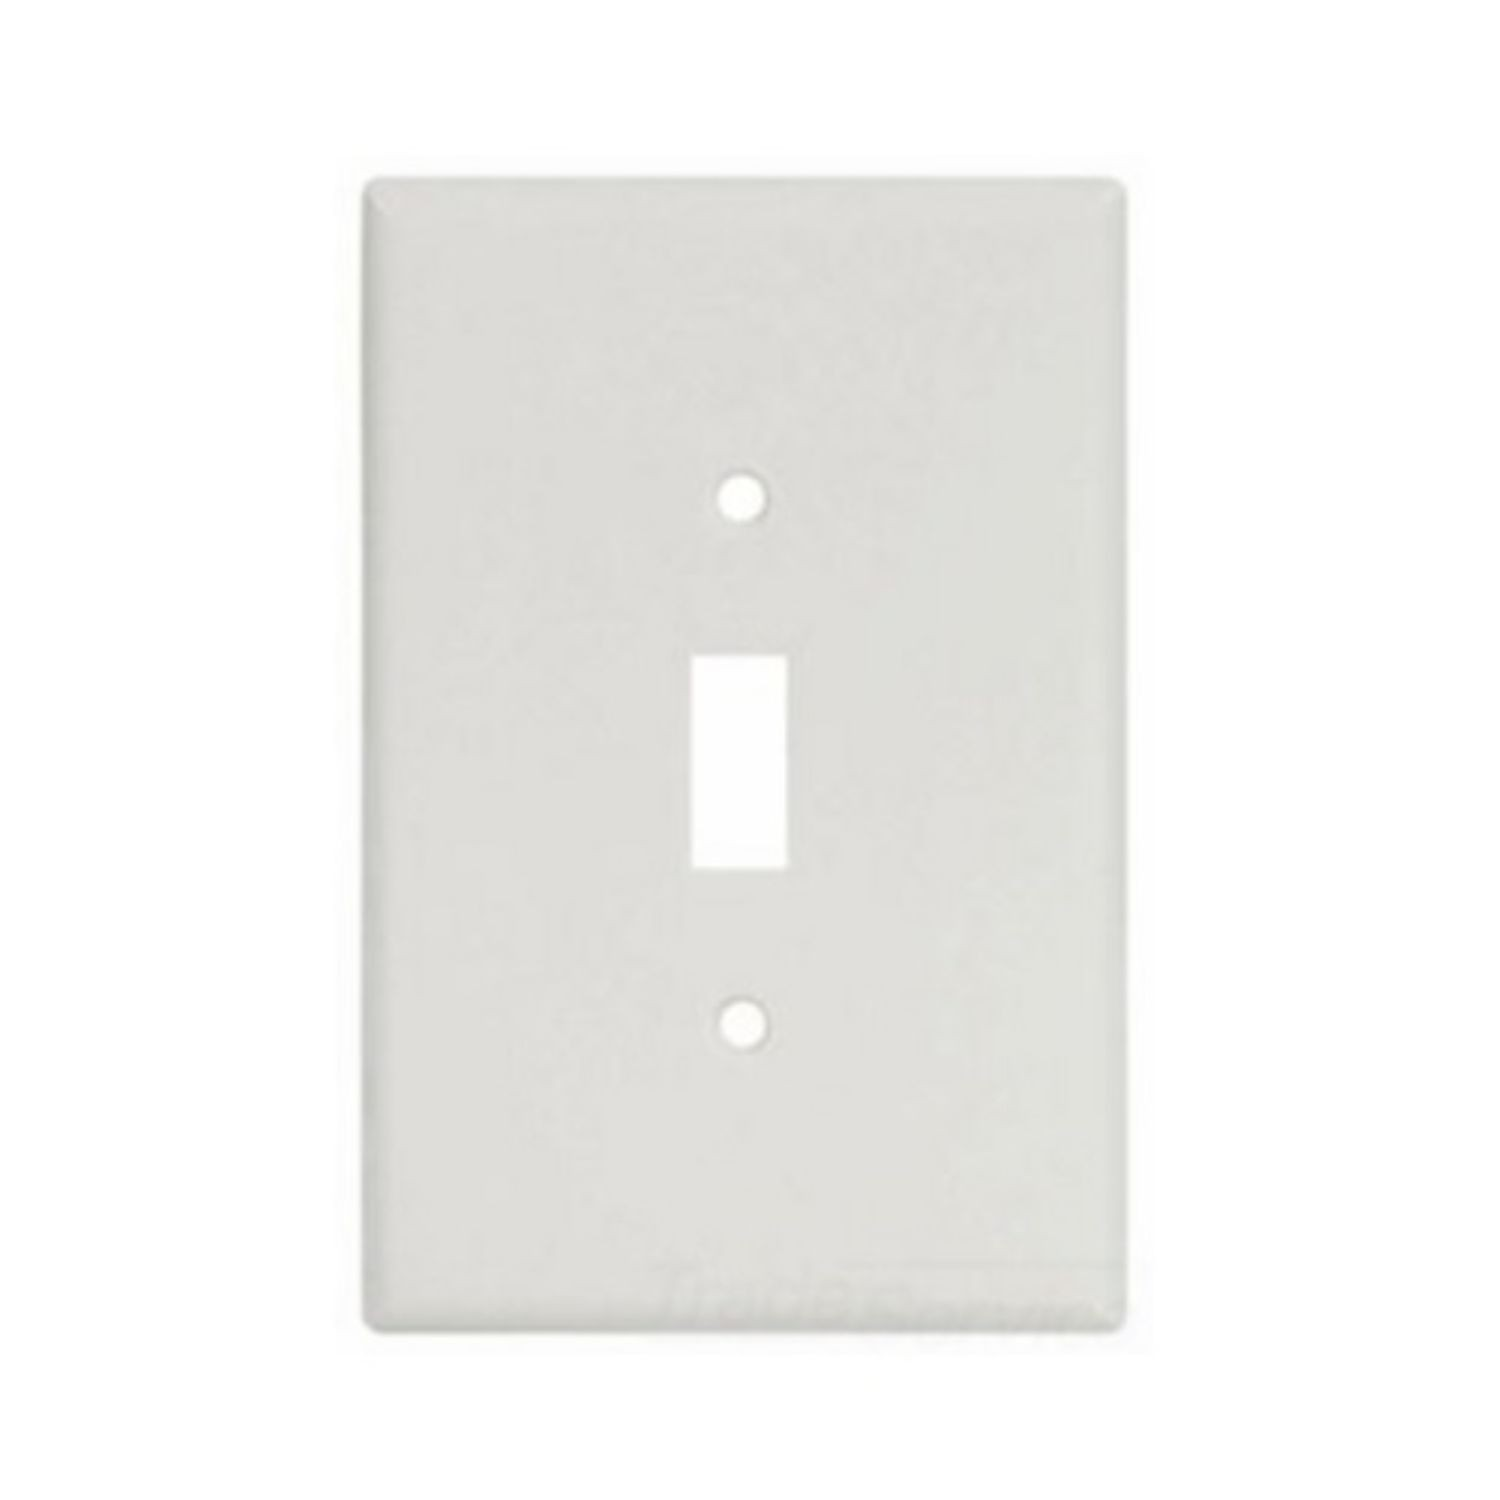 Cooper Wiring Arrow Hart 2144w Box Oversize Wallplate 1 Gang A Three Switch White 5 4 In H X 3 2 W Thermoset